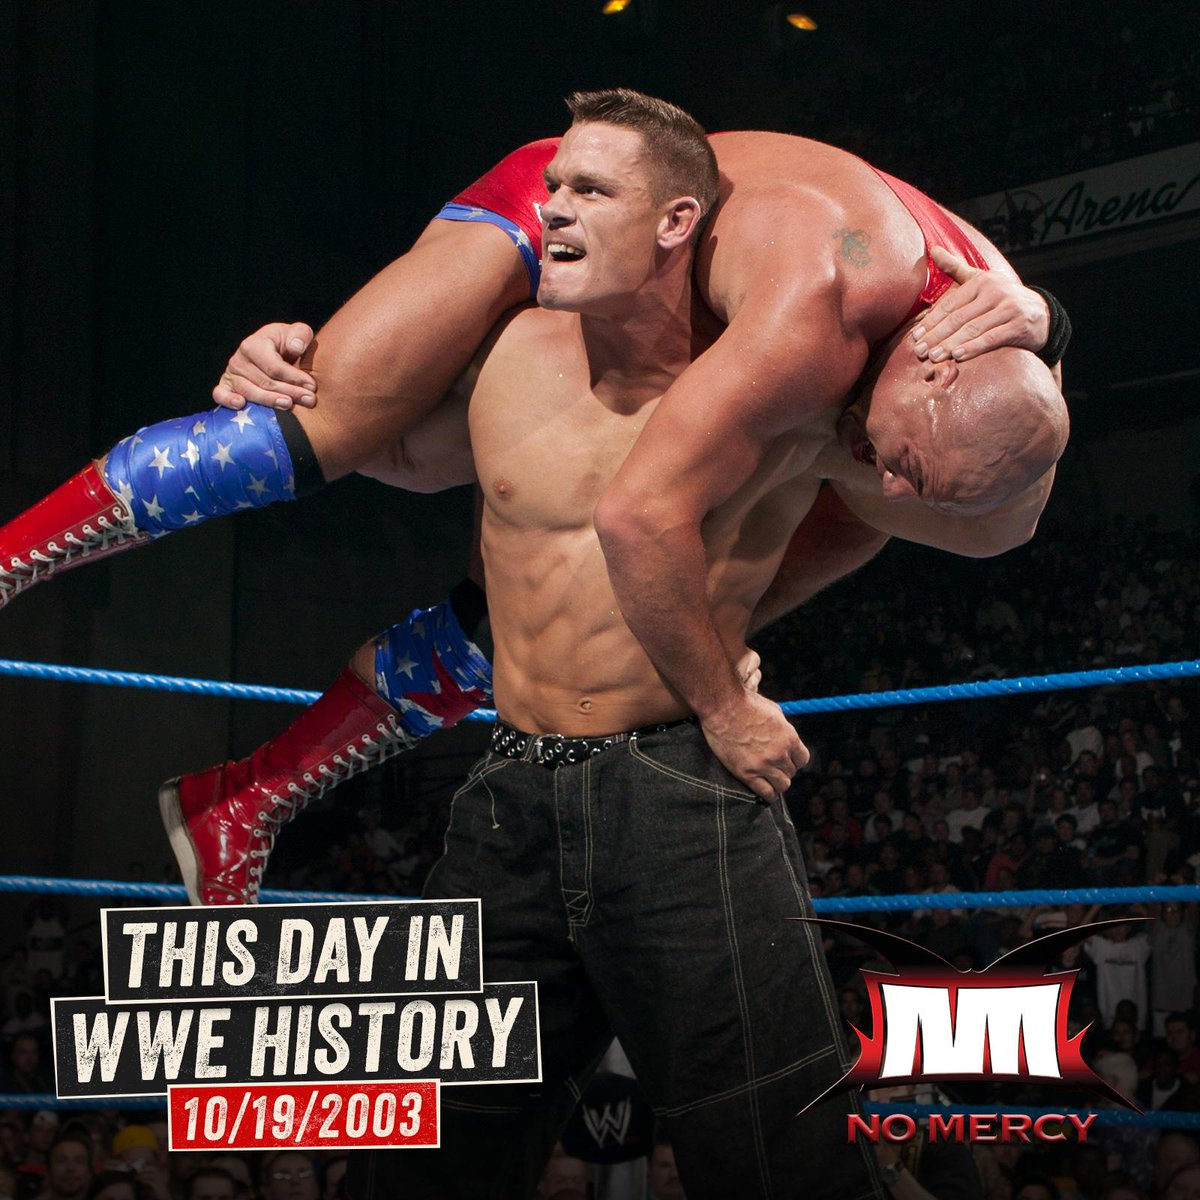 .@JohnCena battled @RealKurtAngle at WWE No Mercy on this day in 2003!